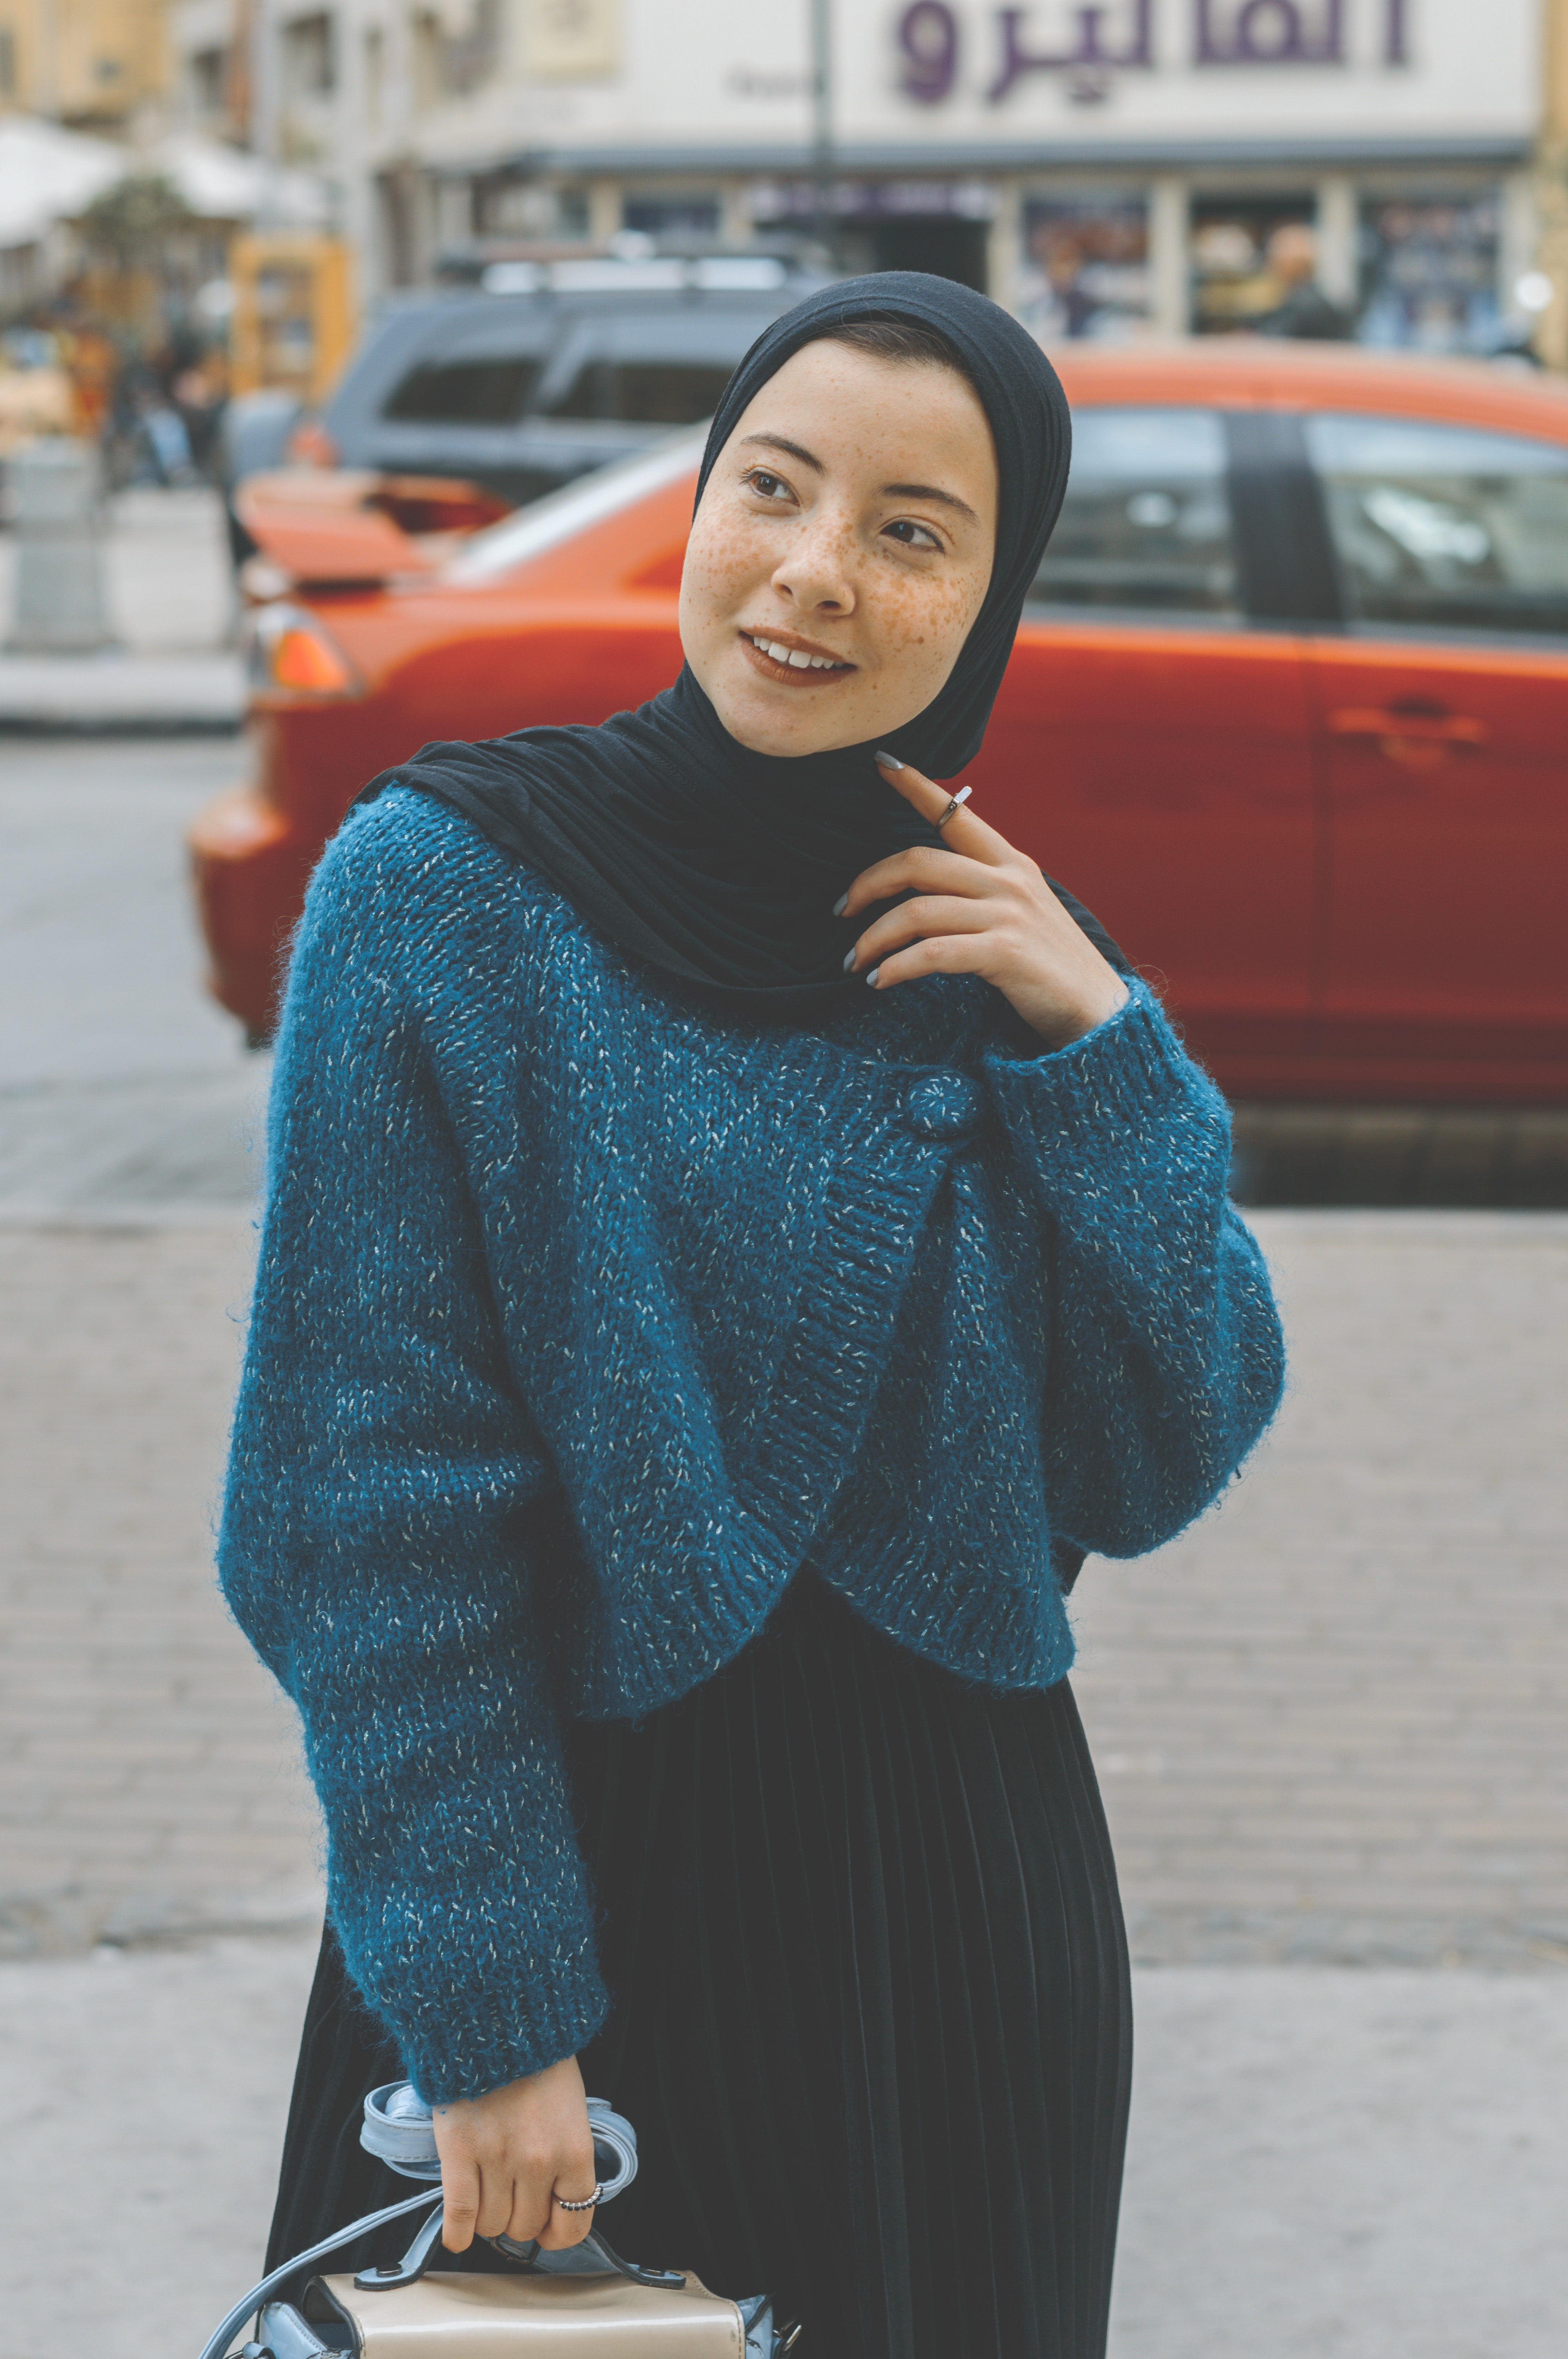 446a2583e1 Woman in Blue Sweater With Black Hijab Outfit · Free Stock Photo